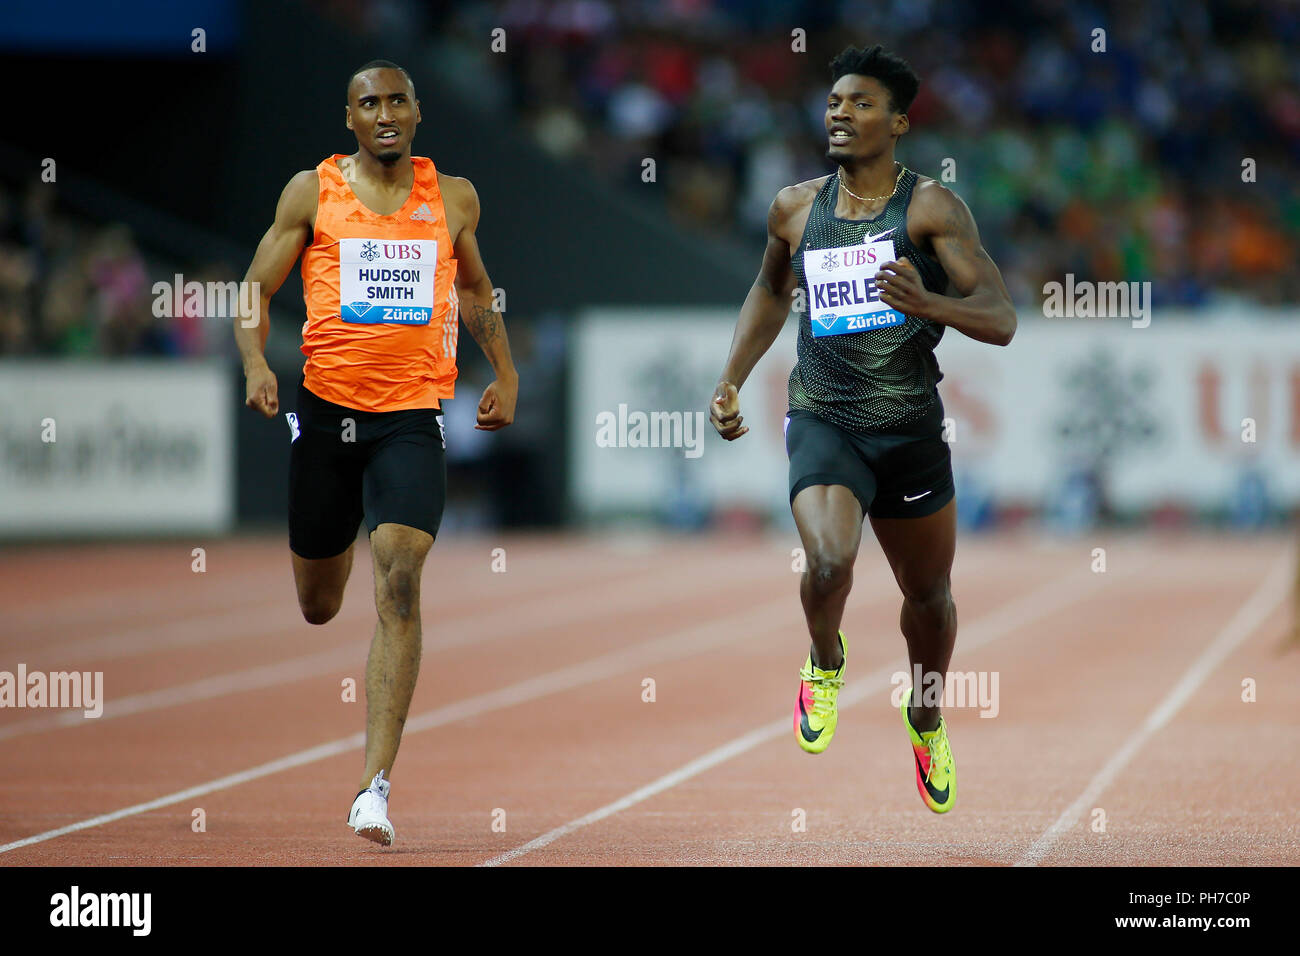 Zurich, Switzerland. 30th Aug, 2018. Fred Kerley (R) of the United States competes during the men's 400m at the IAAF Diamond League athletics meeting in Zurich, Switzerland, Aug. 30, 2018. Fred Kerley claimed the title in a time of 44.80 seconds. Credit: Michele Limina/Xinhua/Alamy Live News - Stock Image